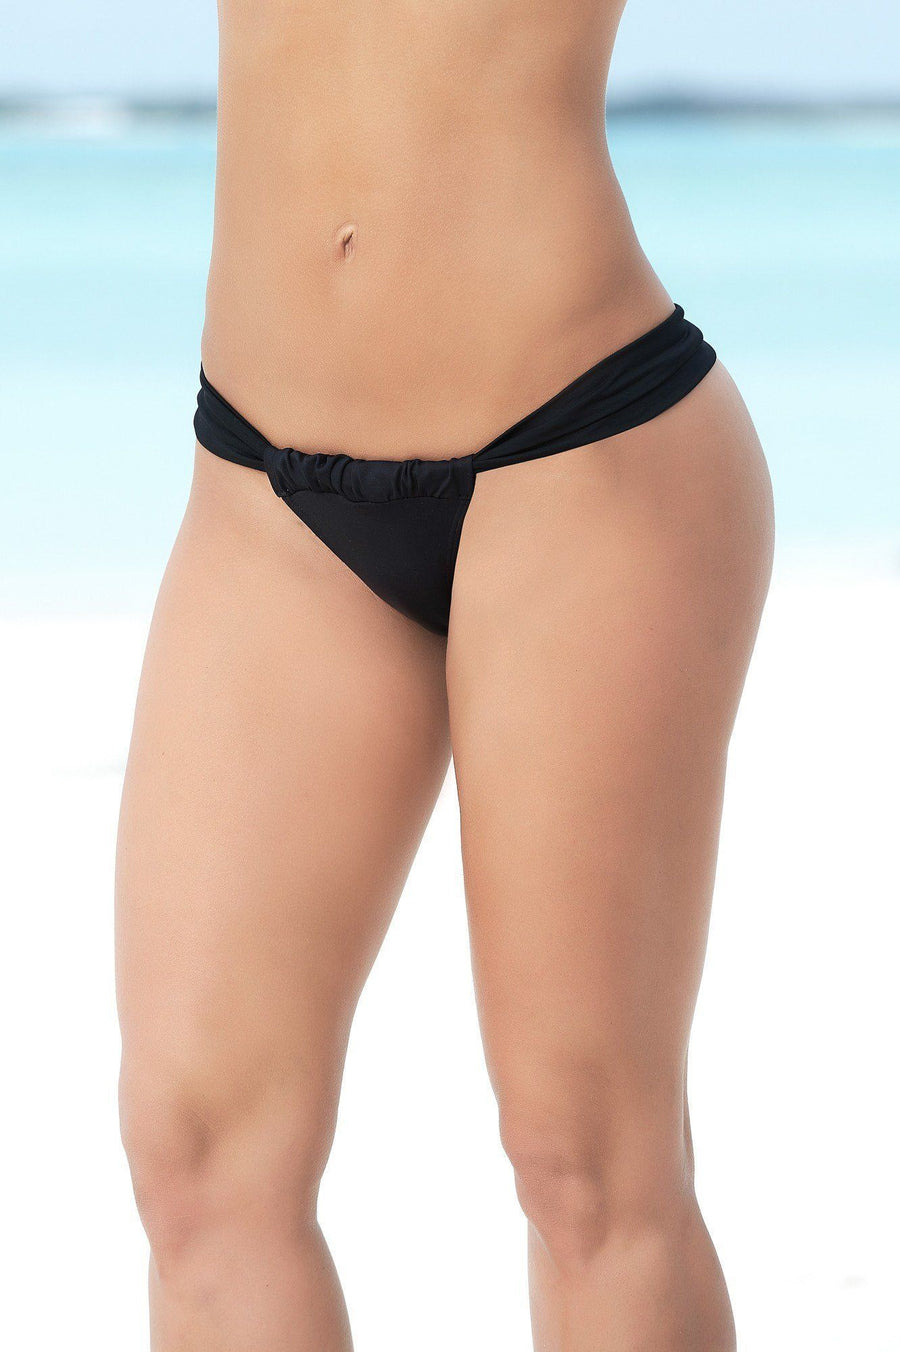 Black Sunny Days Thong Bikini Bottom - PIRATA COUTURE